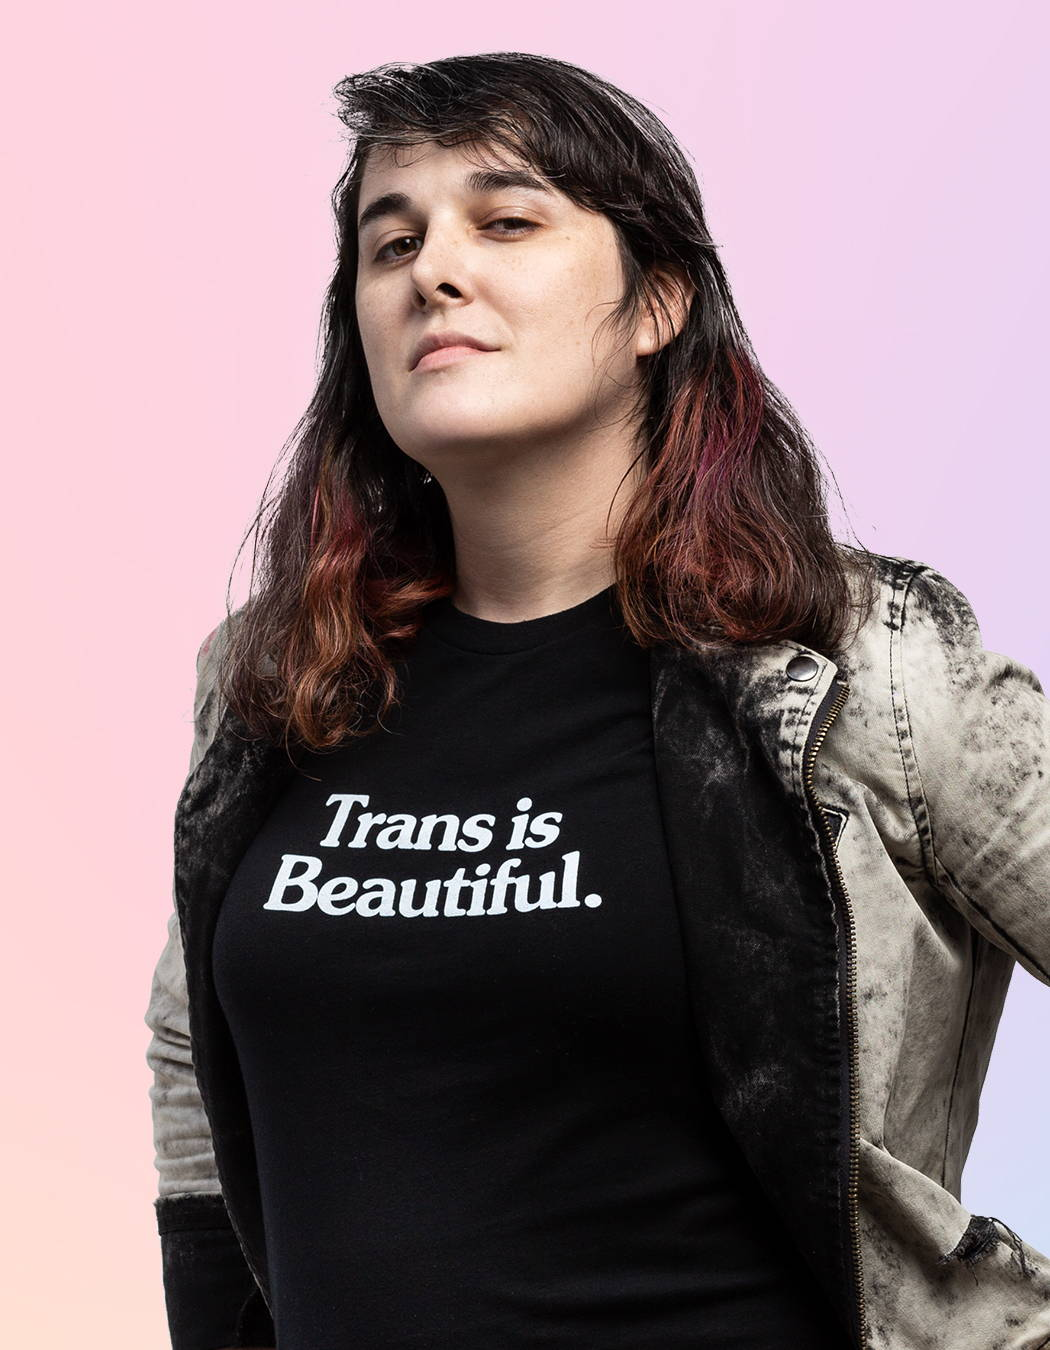 Trans is Beautiful Tee